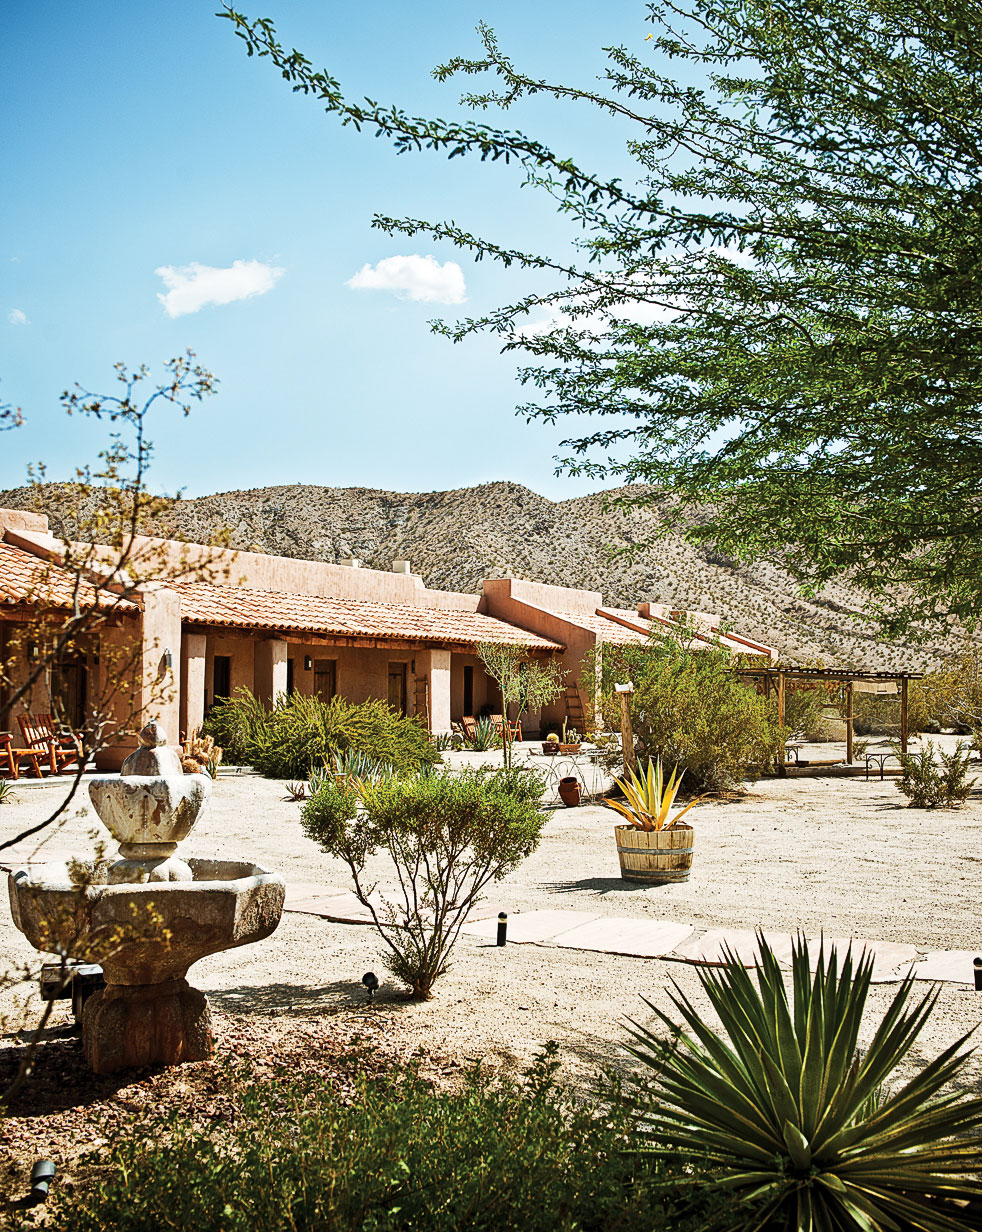 Anza-Borrego Desert: Borrego Valley Inn